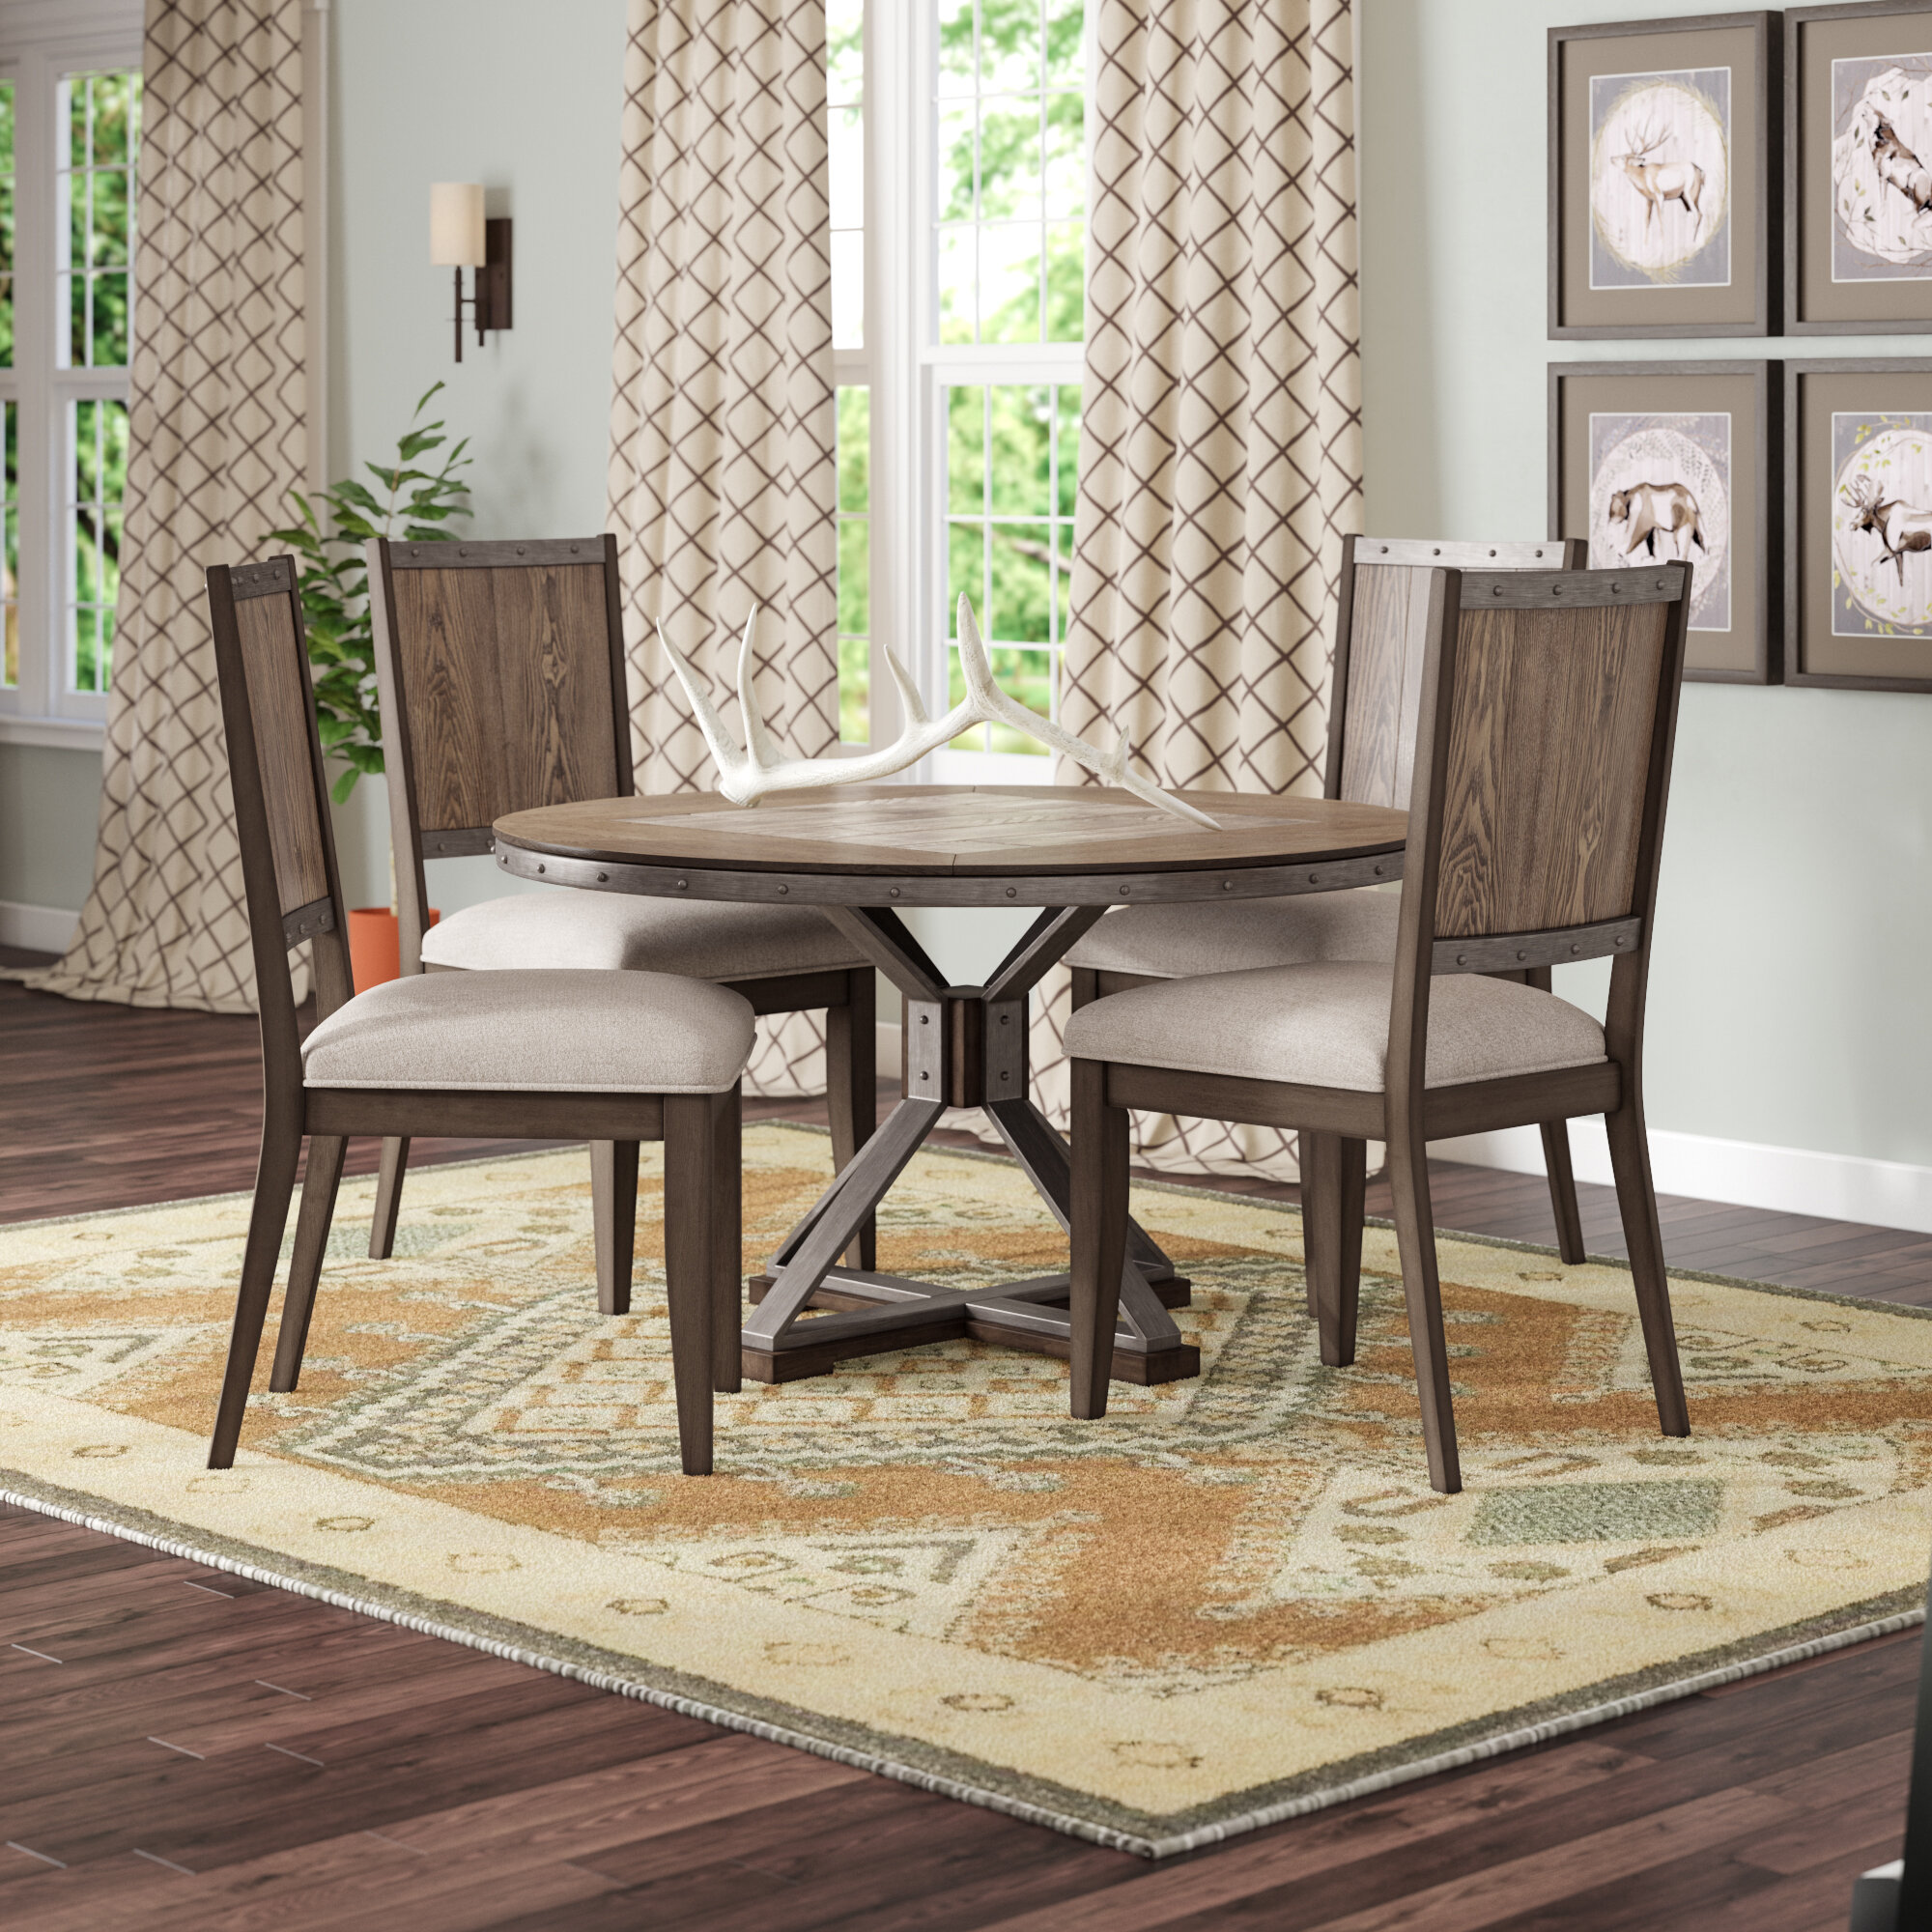 Millwood Pines New Ashford 5 Piece Dining Set Reviews Wayfair